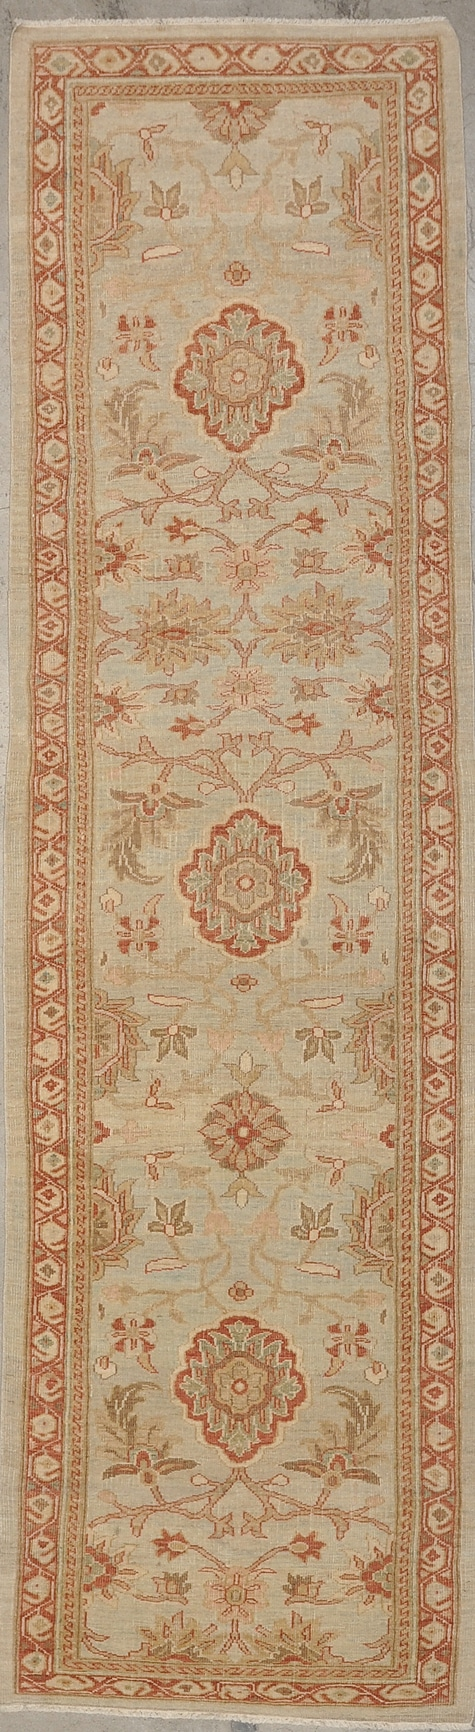 Ziegler & Co Sultanabad rugs and more oriental carpet 33639-